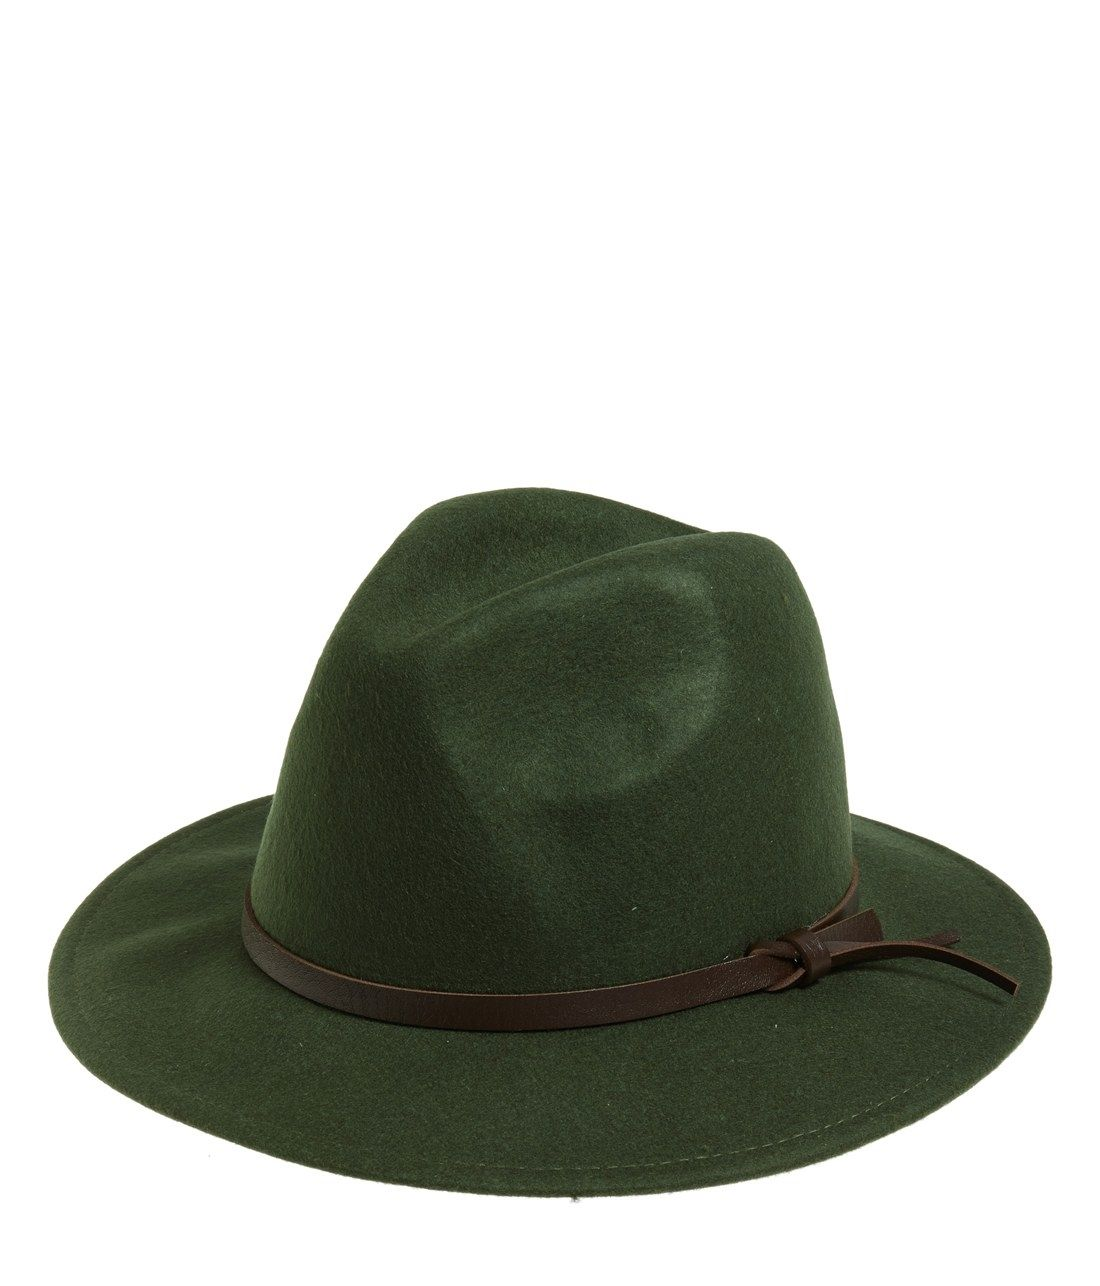 b55e847c8a312a Top off the fall look with a Panama hat fashioned from green felted wool.